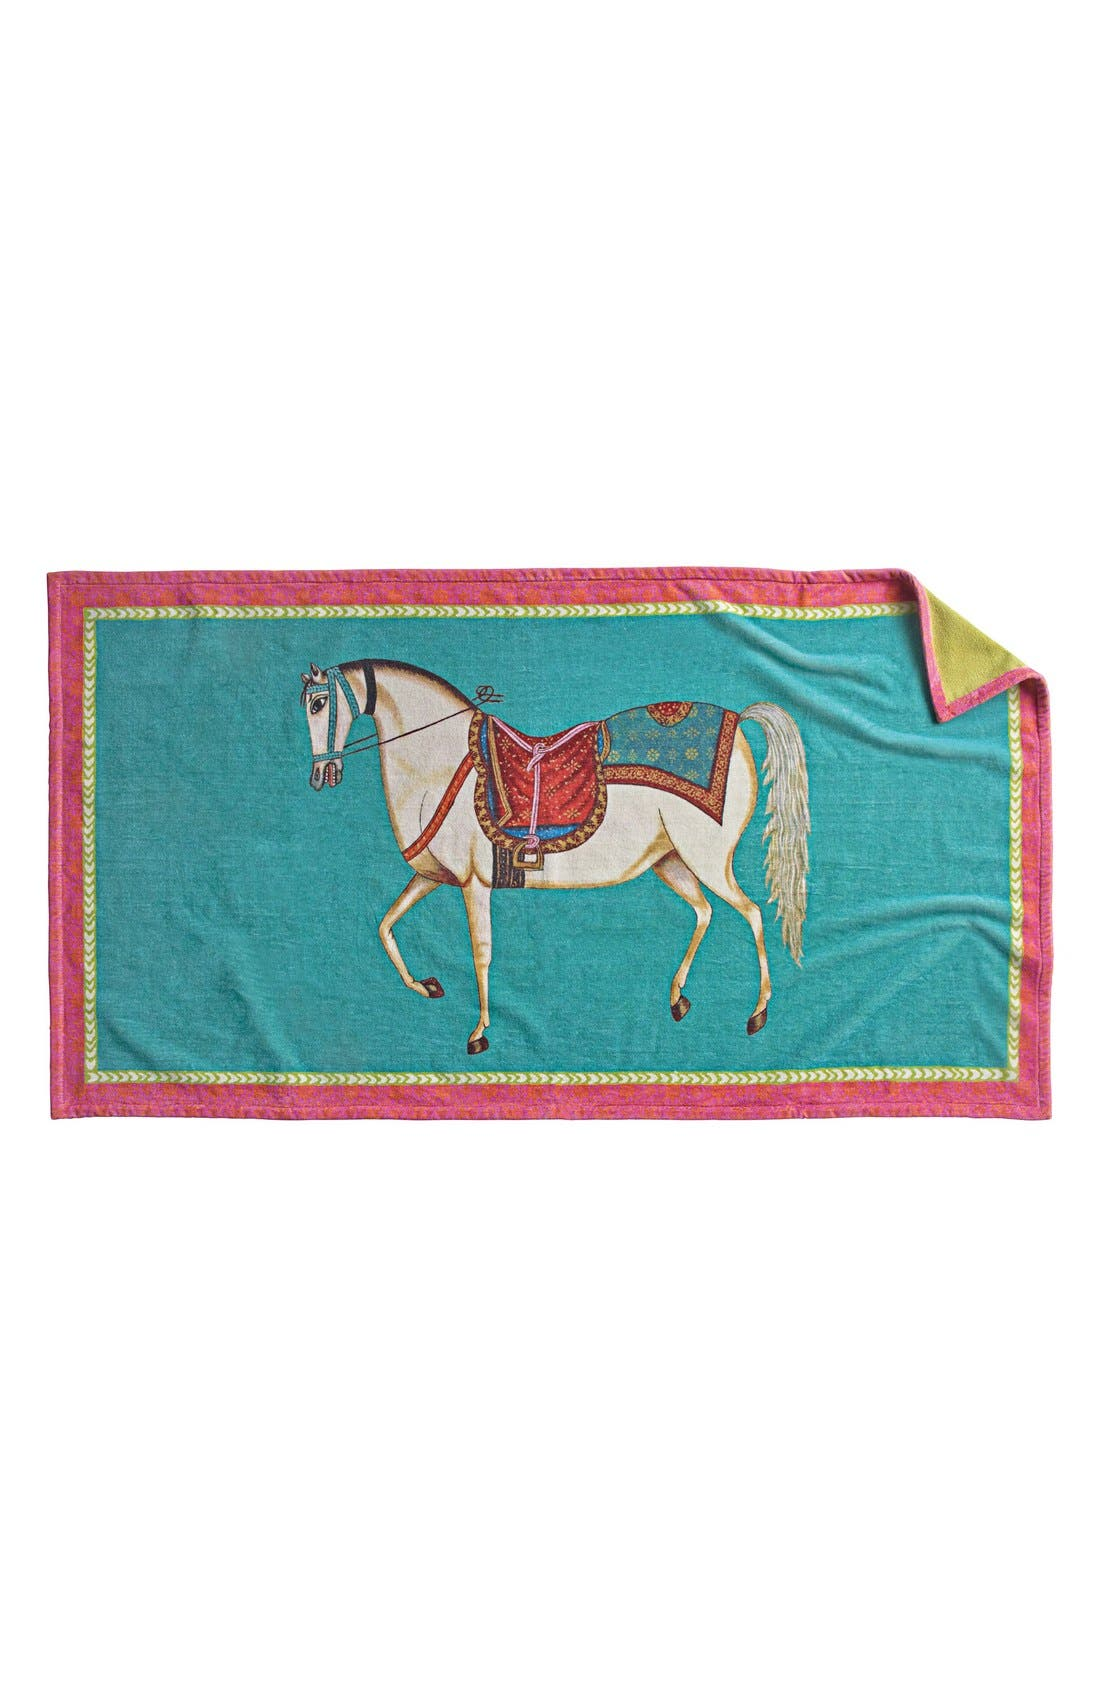 Alternate Image 1 Selected - John Robshaw 'Horse' Beach Towel